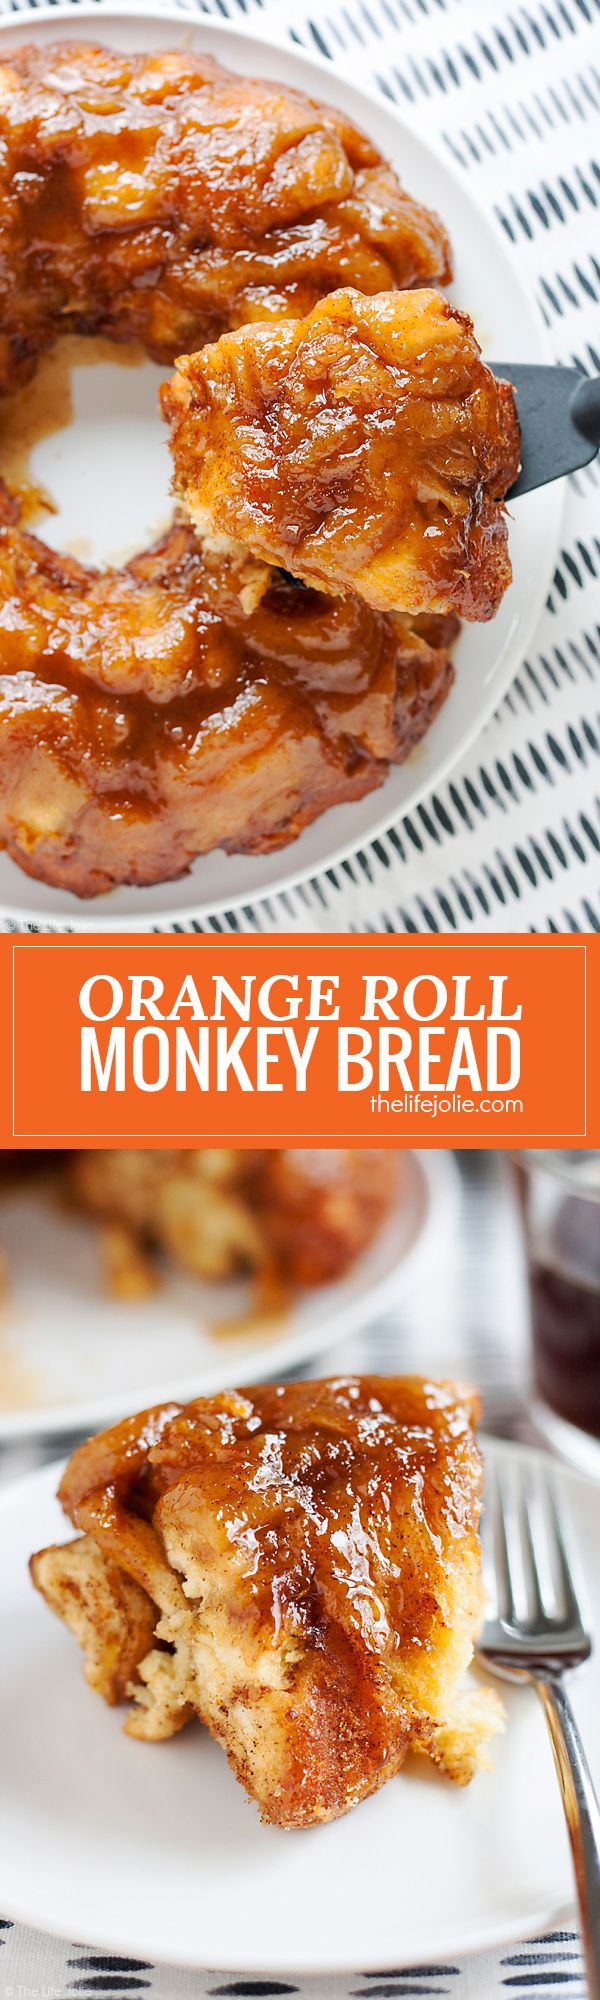 Orange Roll Monkey Bread is an easy and delicious twist on a family favorite recipe. It's so simple to transform refrigerated Orange Cinnamon rolls in to a sweet and gooey pull apart bread. This is a great Christmas morning breakfast and easy enough to make the night before as well!